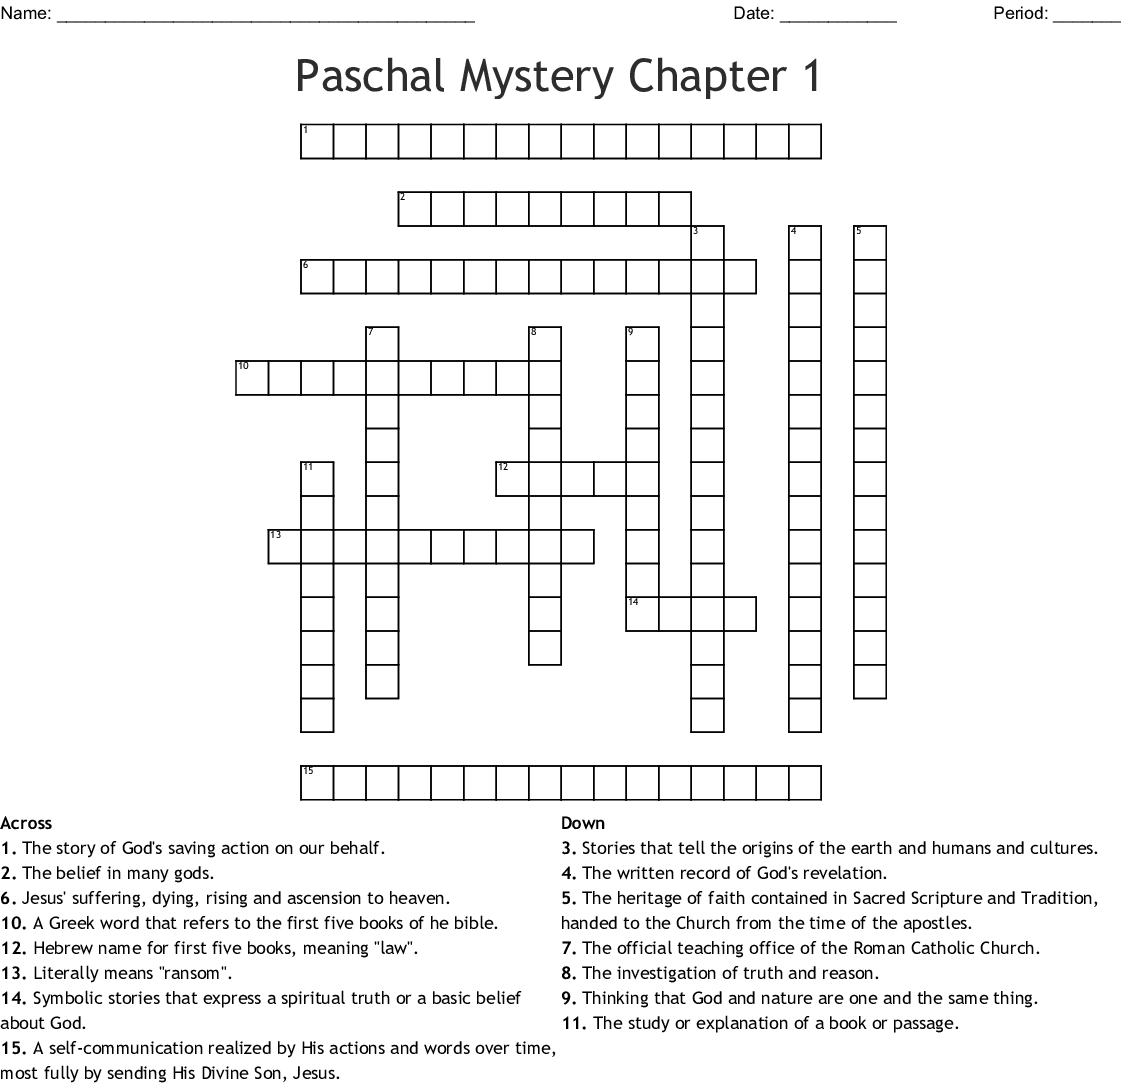 Paschal Mystery Chapter 1 Word Search